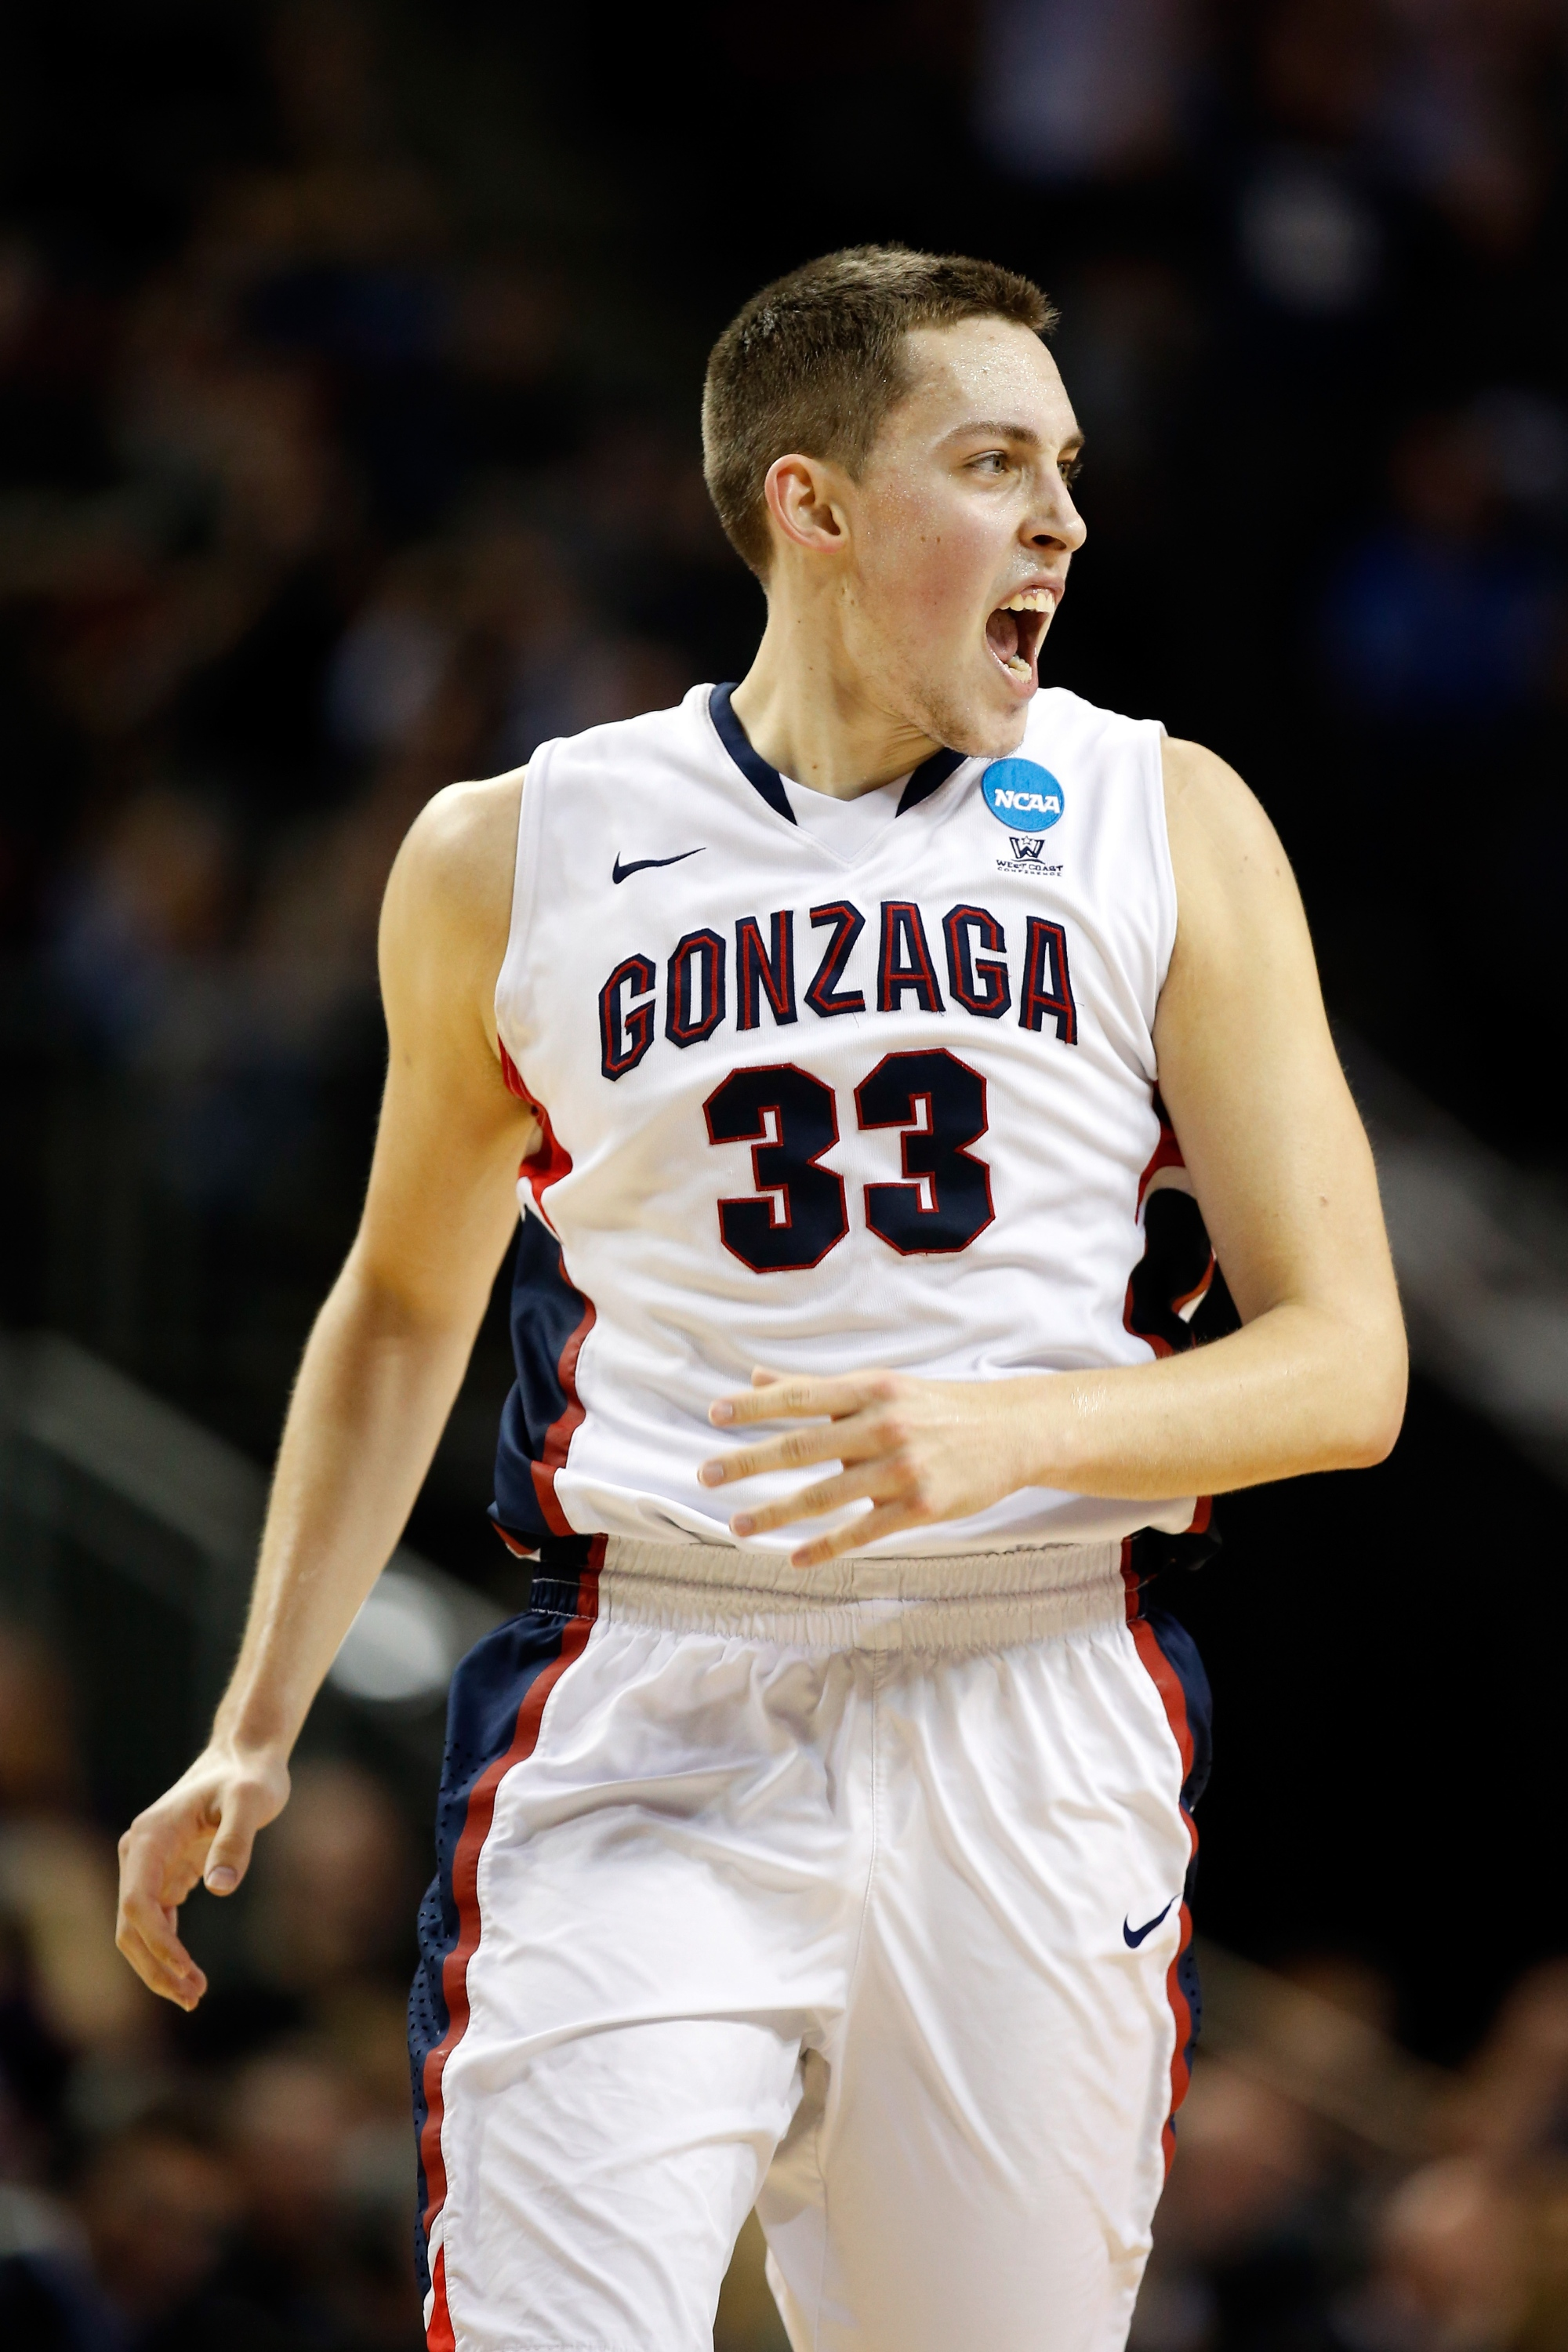 SEATTLE, WA - MARCH 22:  Kyle Wiltjer #33 of the Gonzaga Bulldogs reacts after a shot in the second half of the game against the Iowa Hawkeyes during the third round of the 2015 NCAA Men's Basketball Tournament at KeyArena on March 22, 2015 in Seattle, Washington.  (Photo by Ezra Shaw/Getty Images)